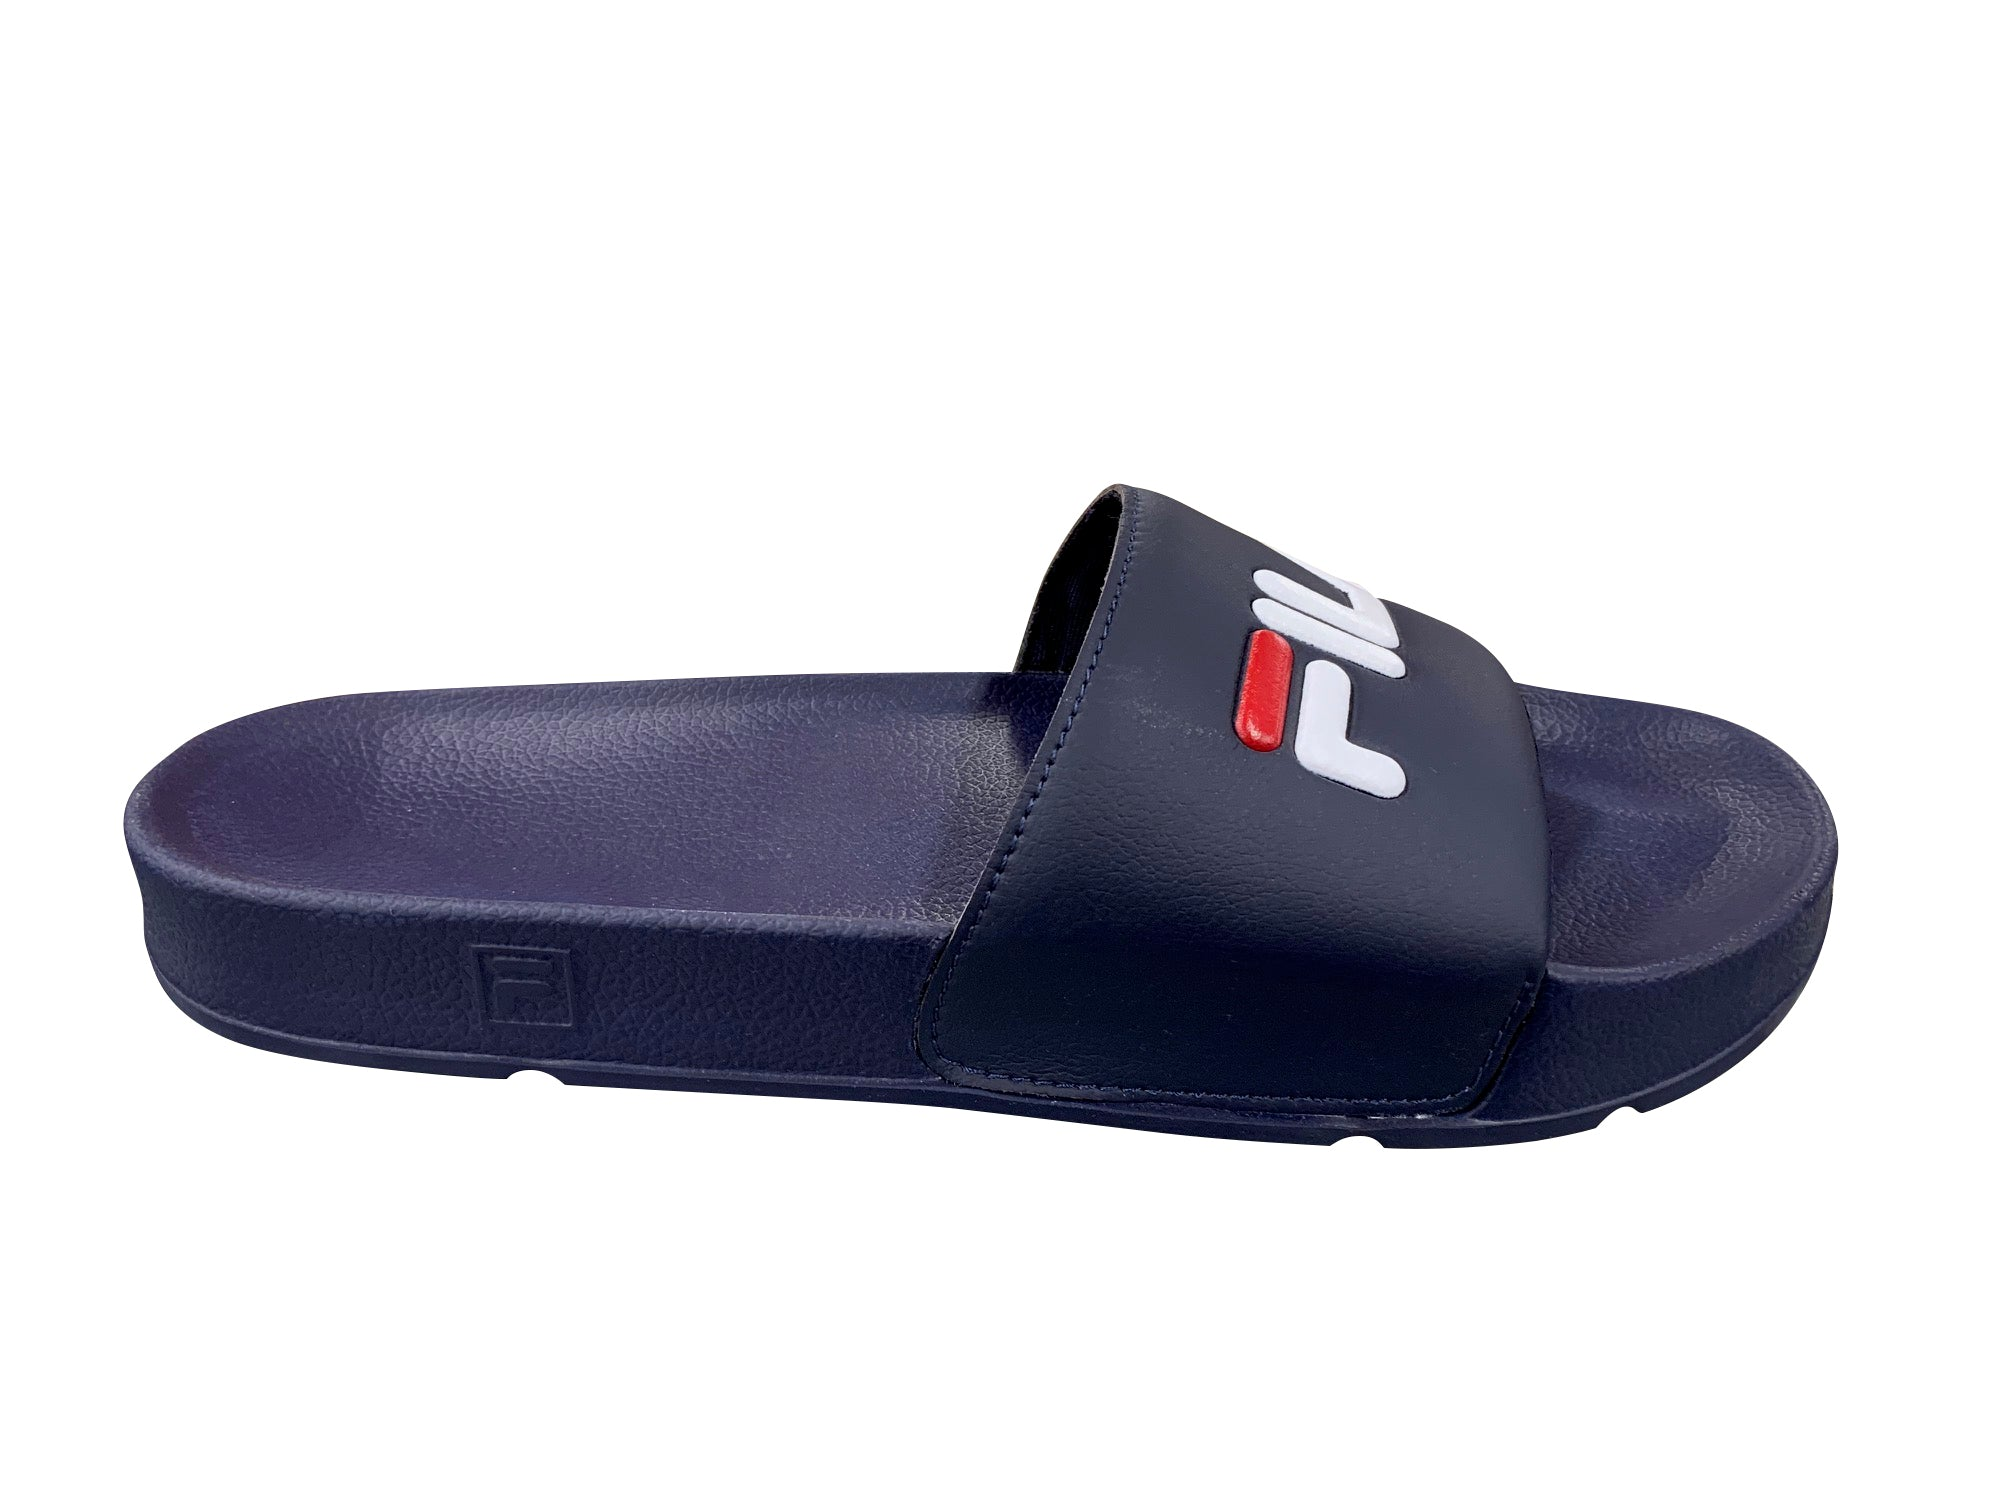 MEN'S NAVY FILA SLIDES